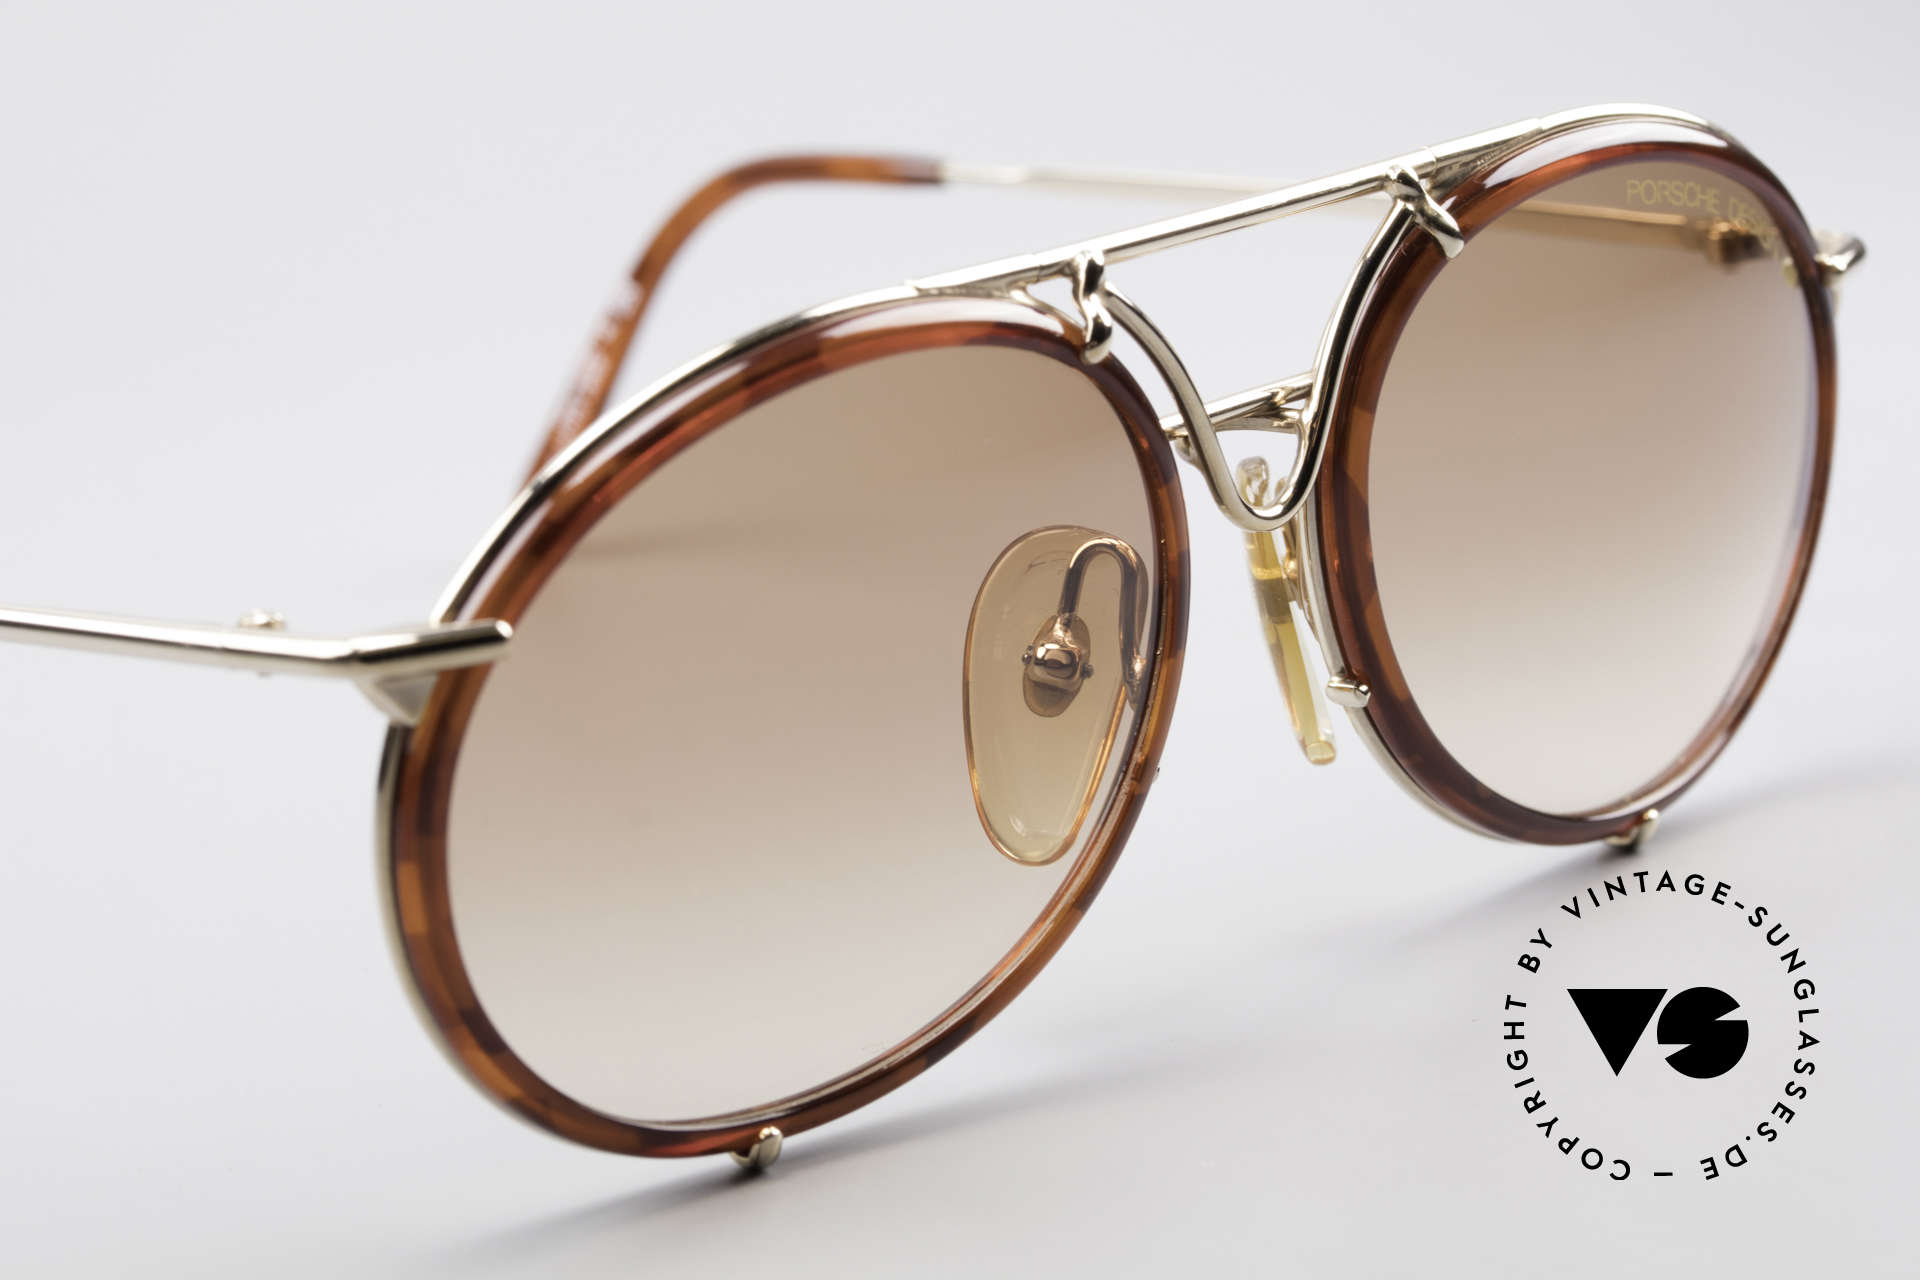 Porsche 5661 Classic 90's Sunglasses Round, NO RETRO, but an old ORIGINAL from the early 90's, Made for Men and Women